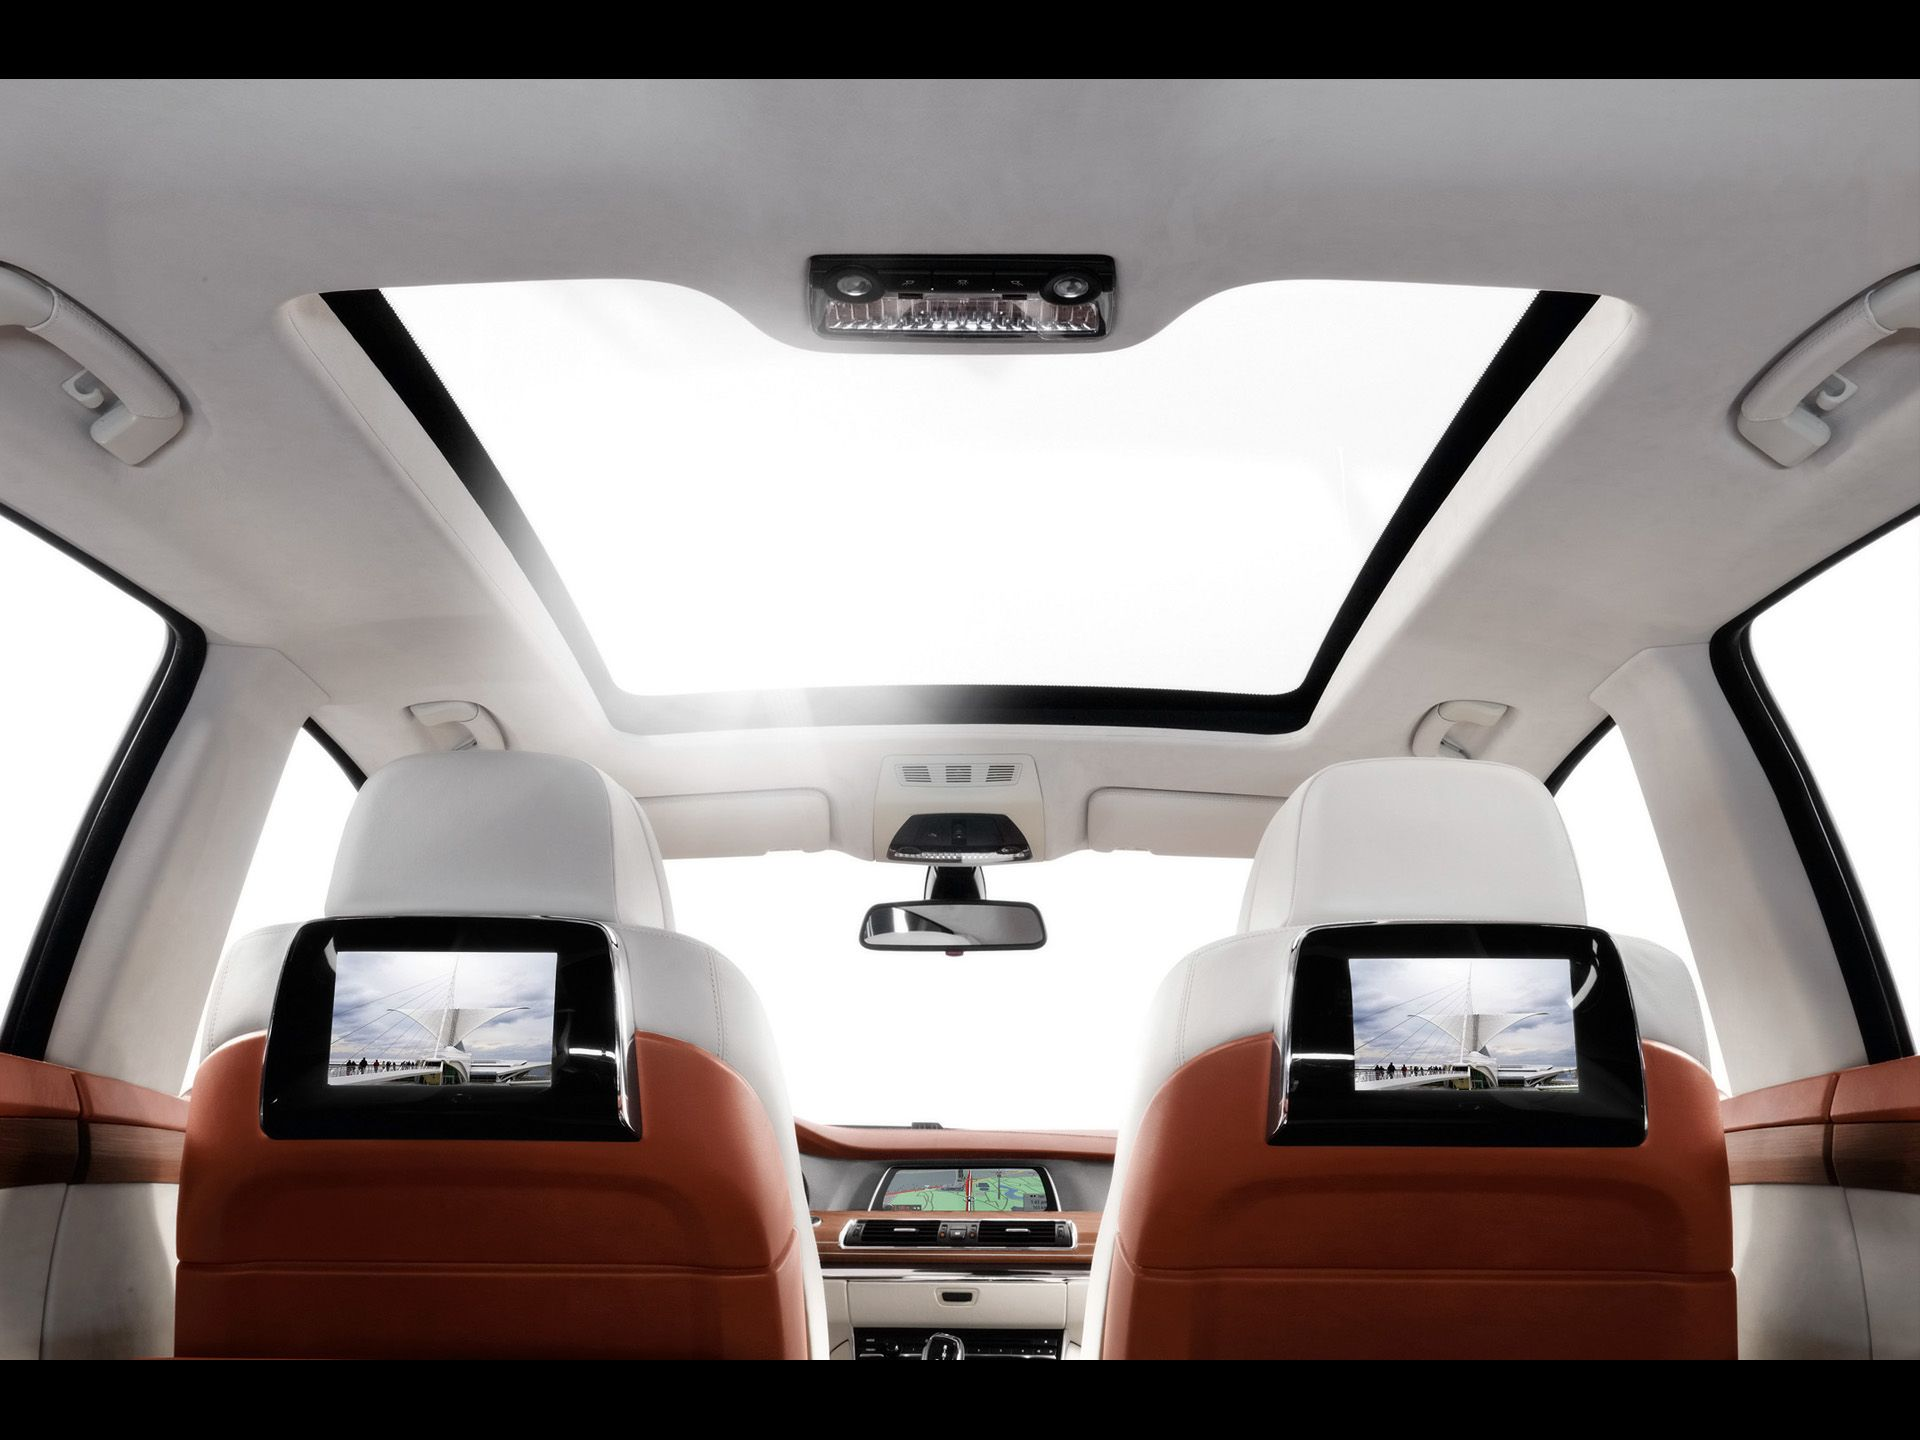 2016 Bmw 7 Series Will Get Leather Engine Cover And Panorama Glass Roof Sky Lounge Bmw Concept Bmw 7 Series Glass Roof